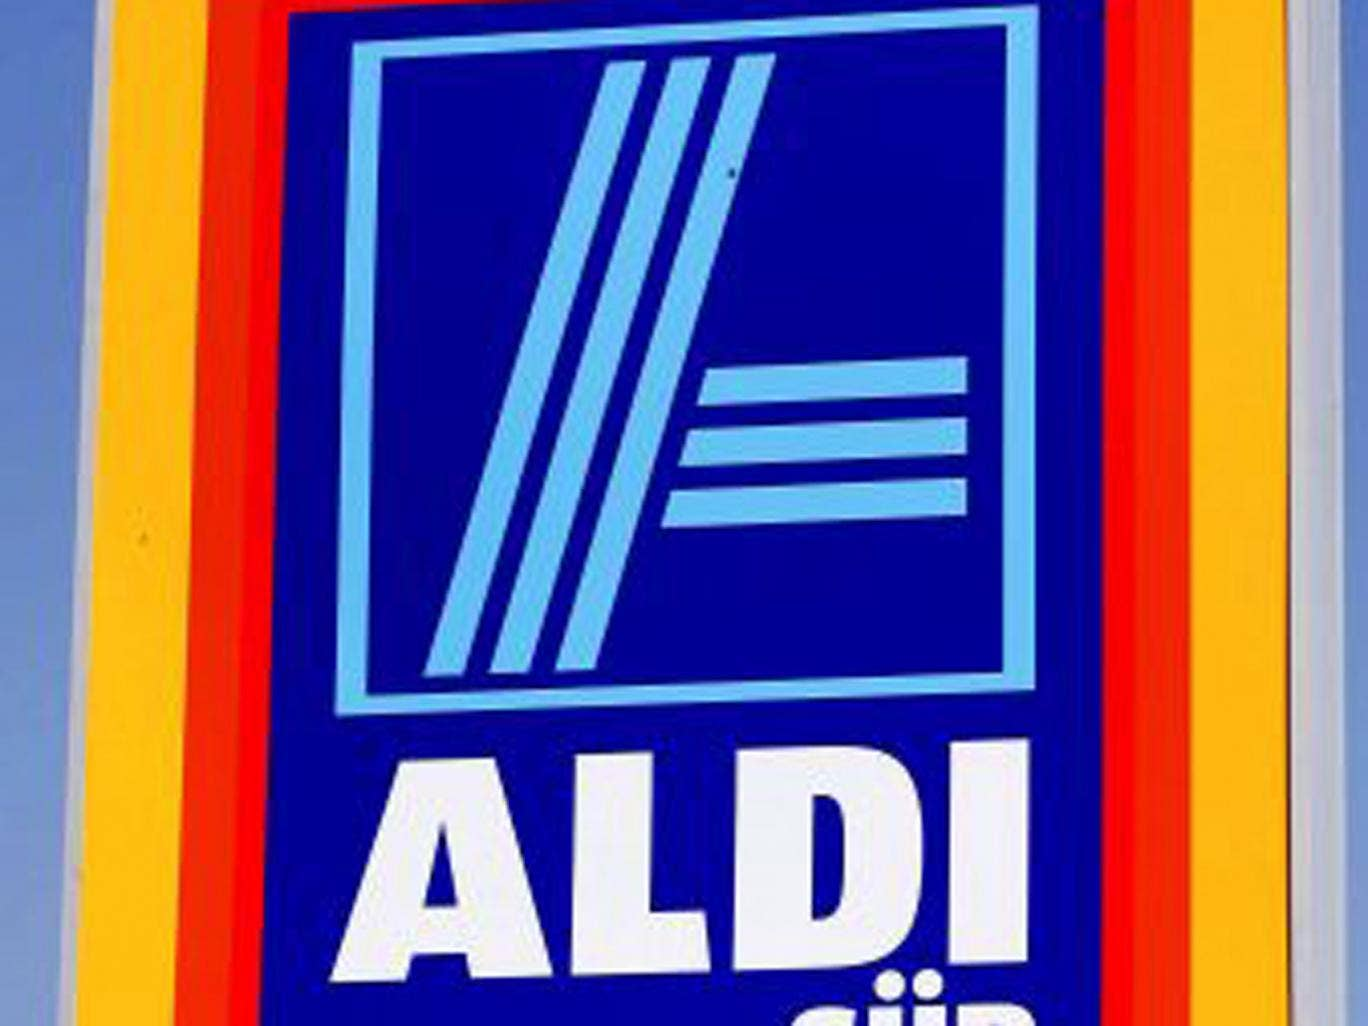 A private detective who worked for the German discount supermarket chain Aldi has accused it of using Stasi-style surveillance tactics – including hidden cameras – to spy on staff and gather information that could be used against them